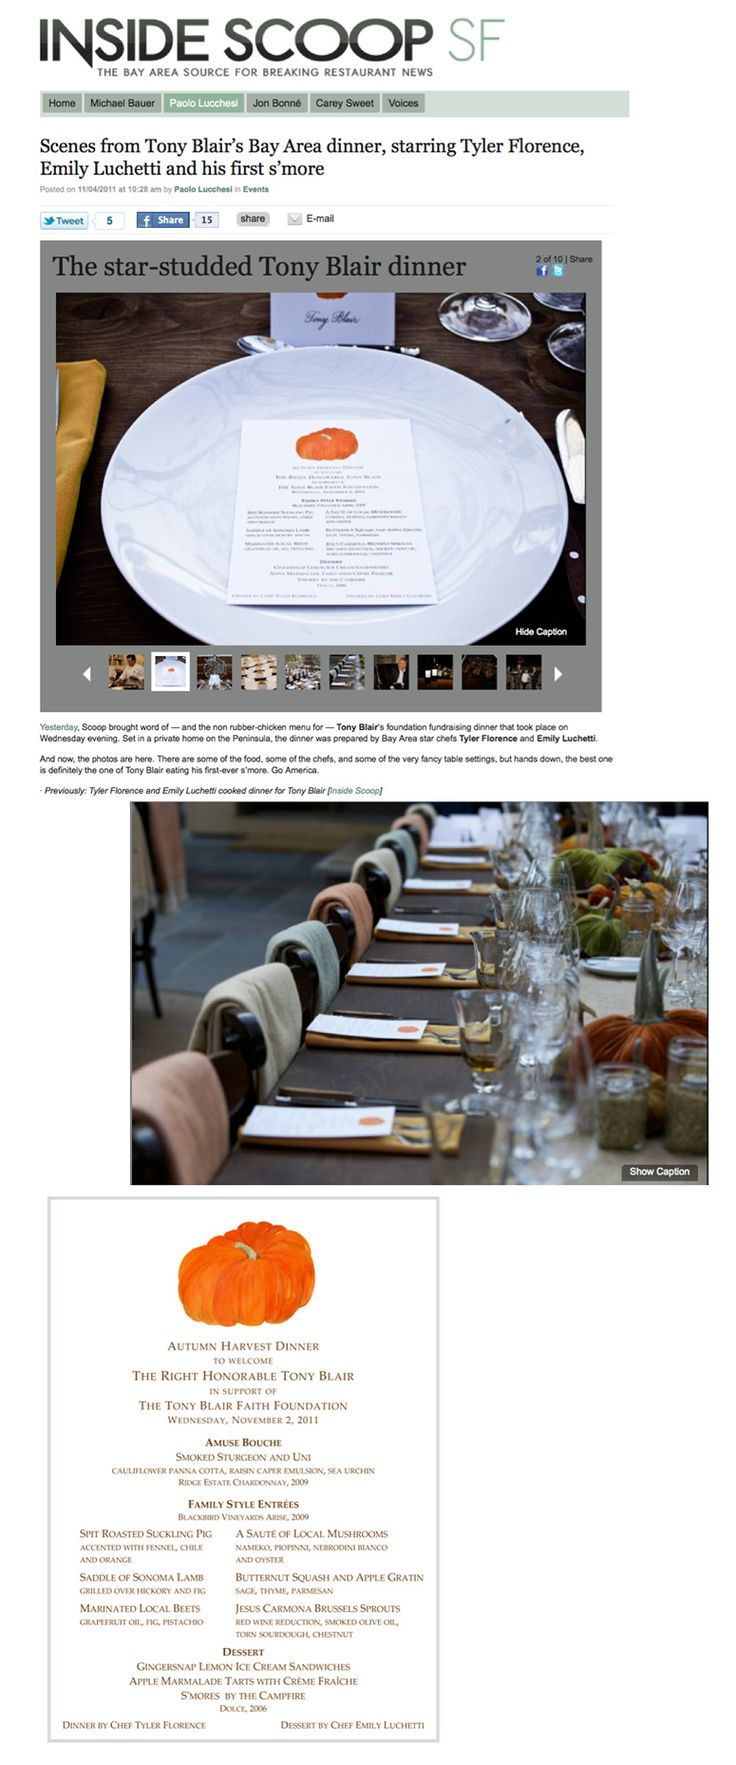 Lobird custom menu cards designed for Tony Blair Faith Foundation event features in Inside Scoop SF